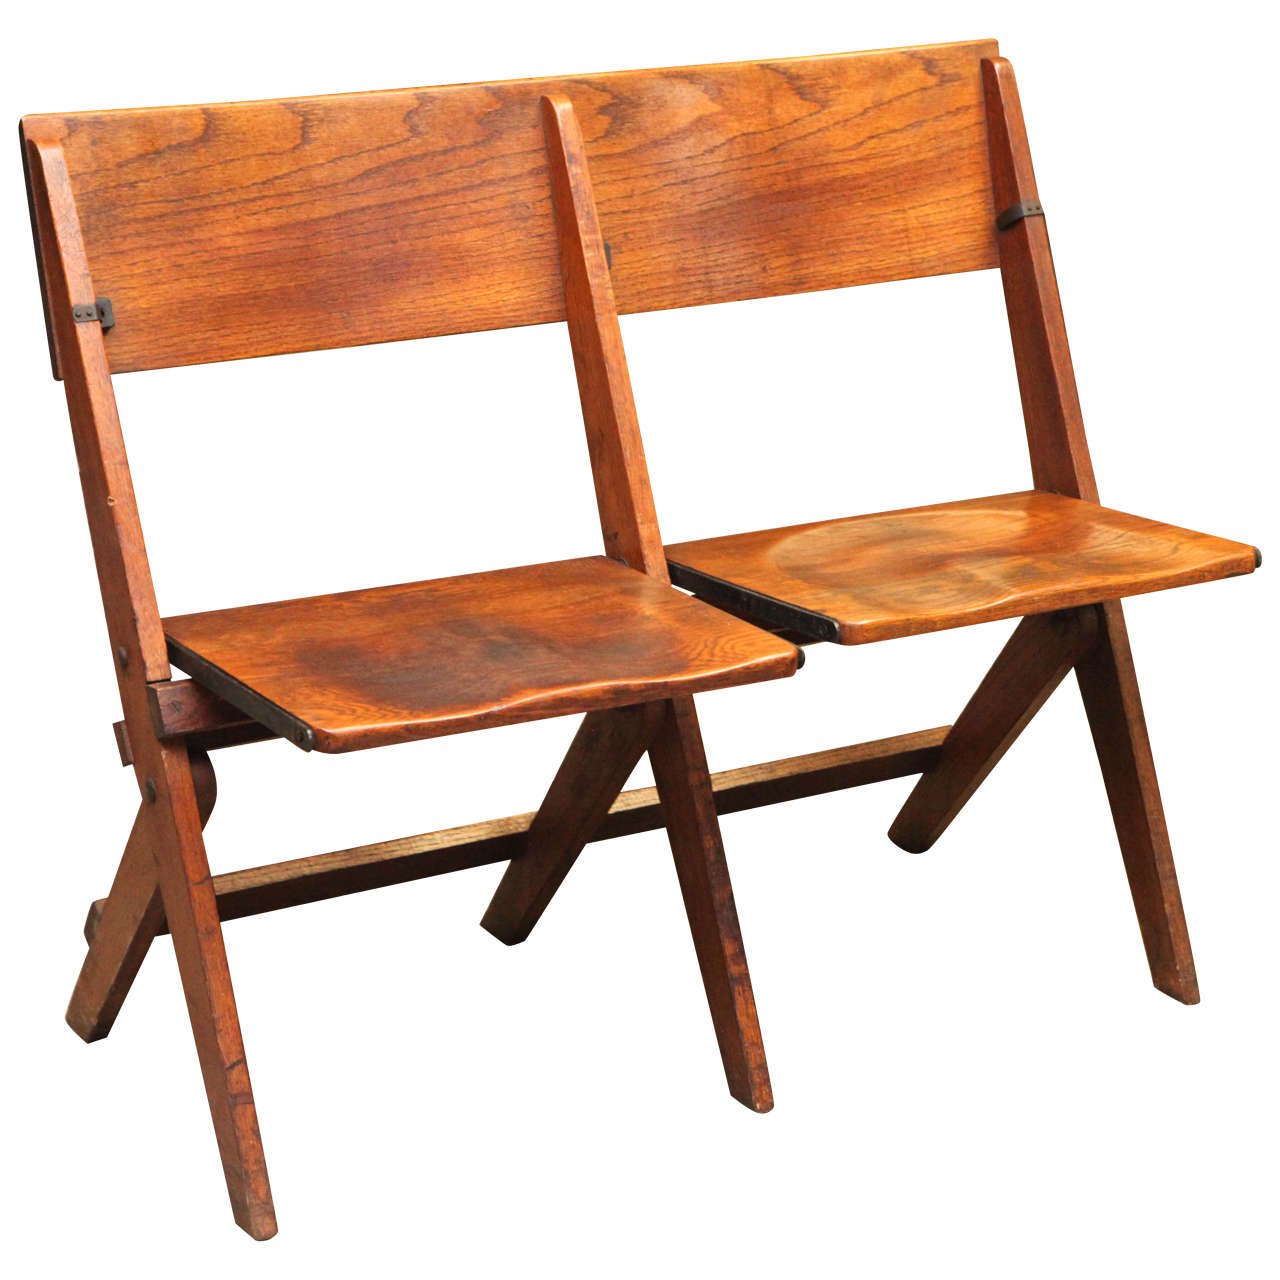 Late 19th Century Double Folding Chair from France